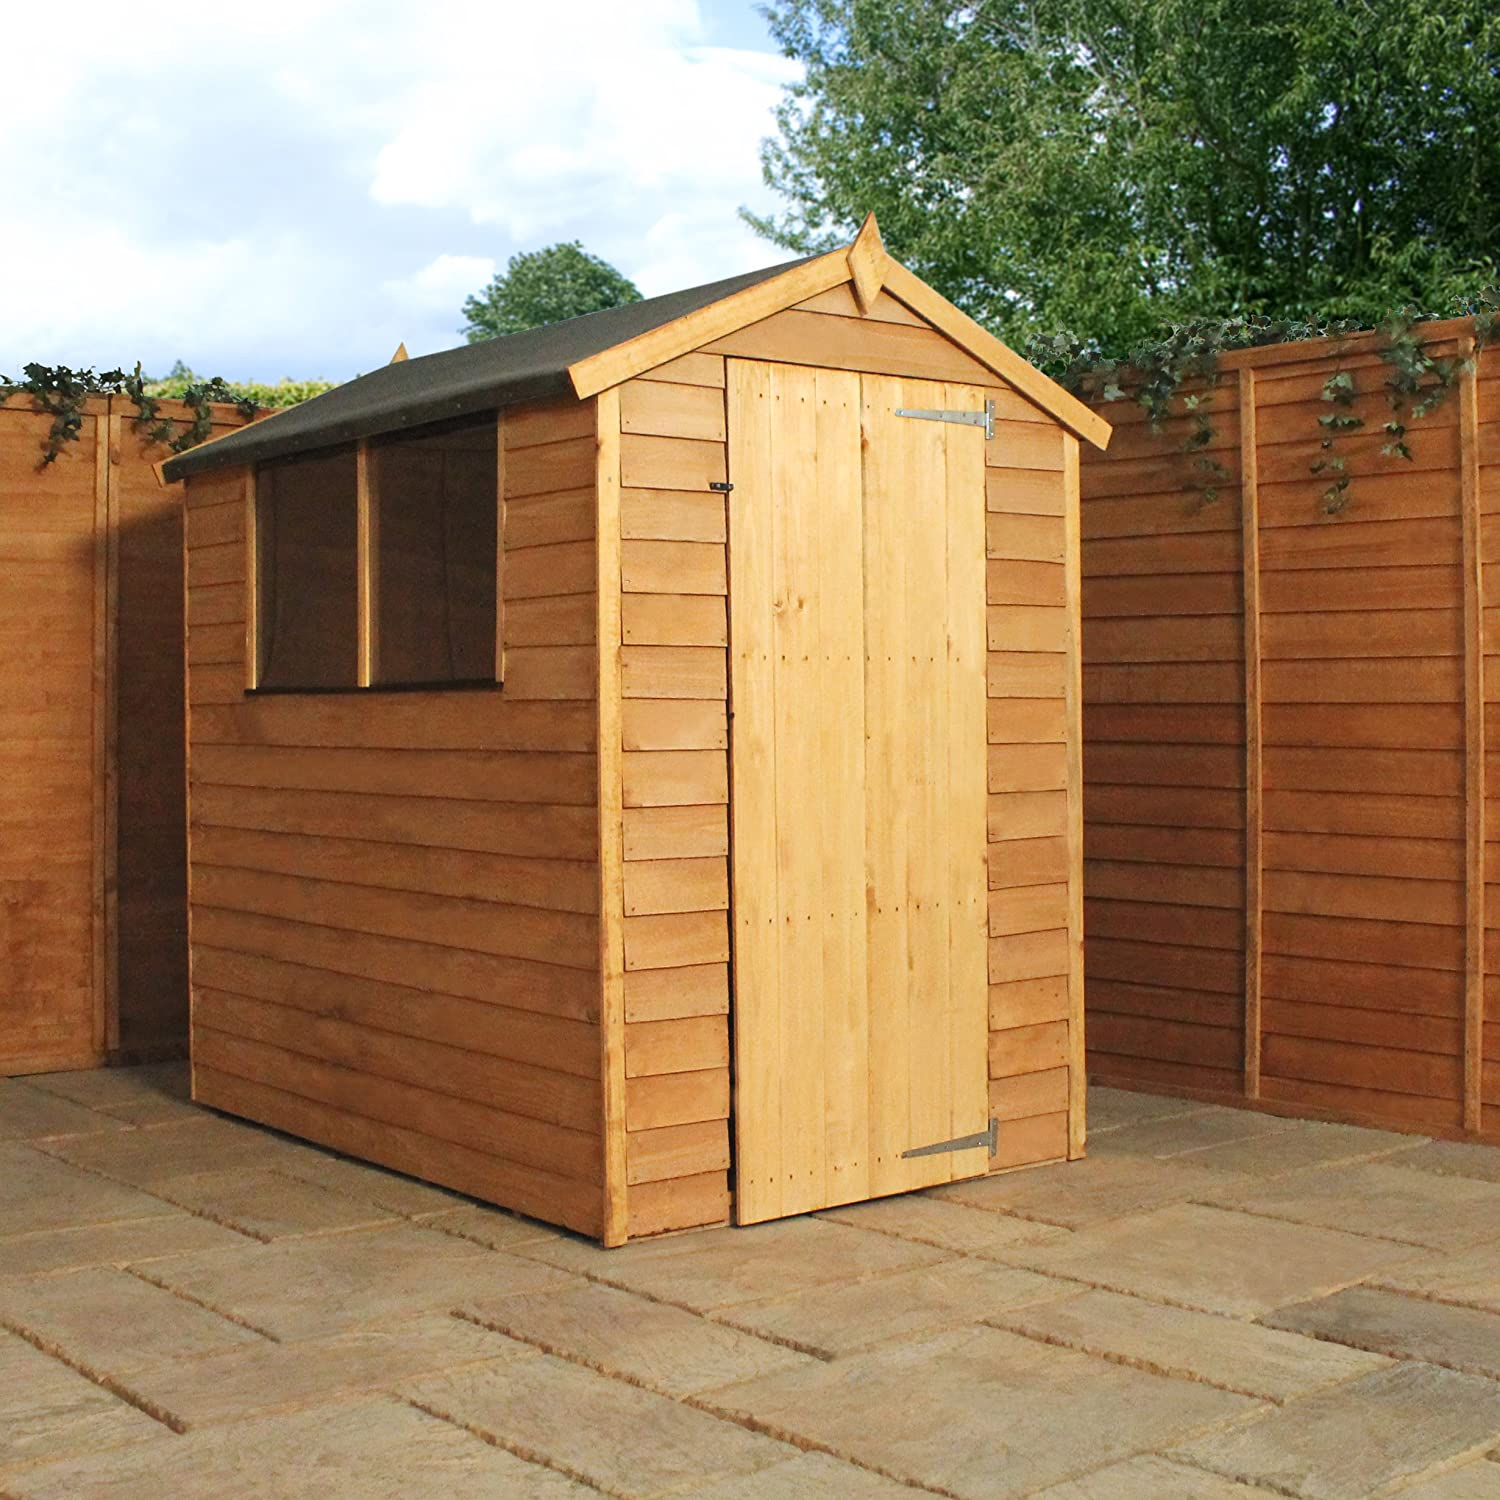 6x4 overlap wooden apex garden shed styrene windows single door by waltons amazoncouk garden outdoors